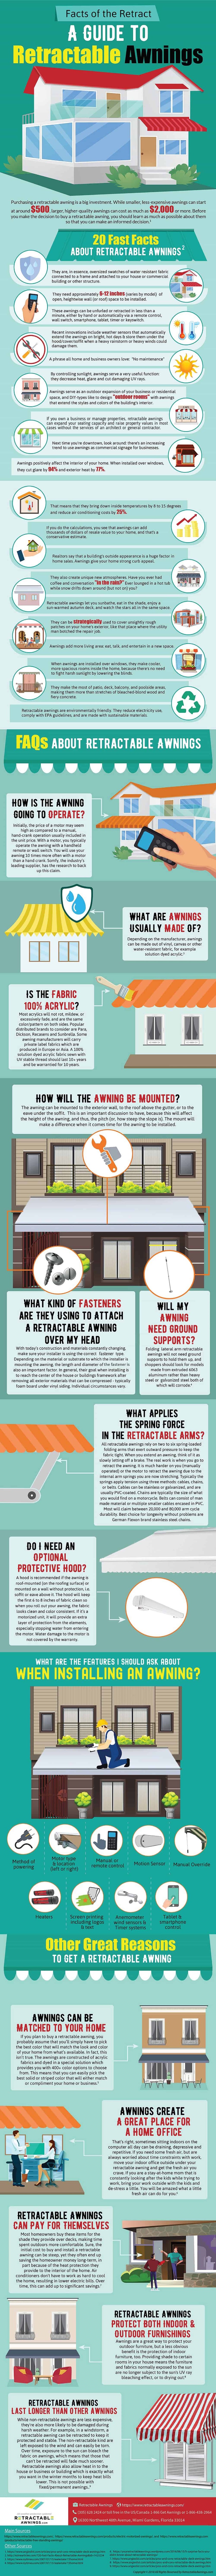 Retractable awnings benefits and info graphic